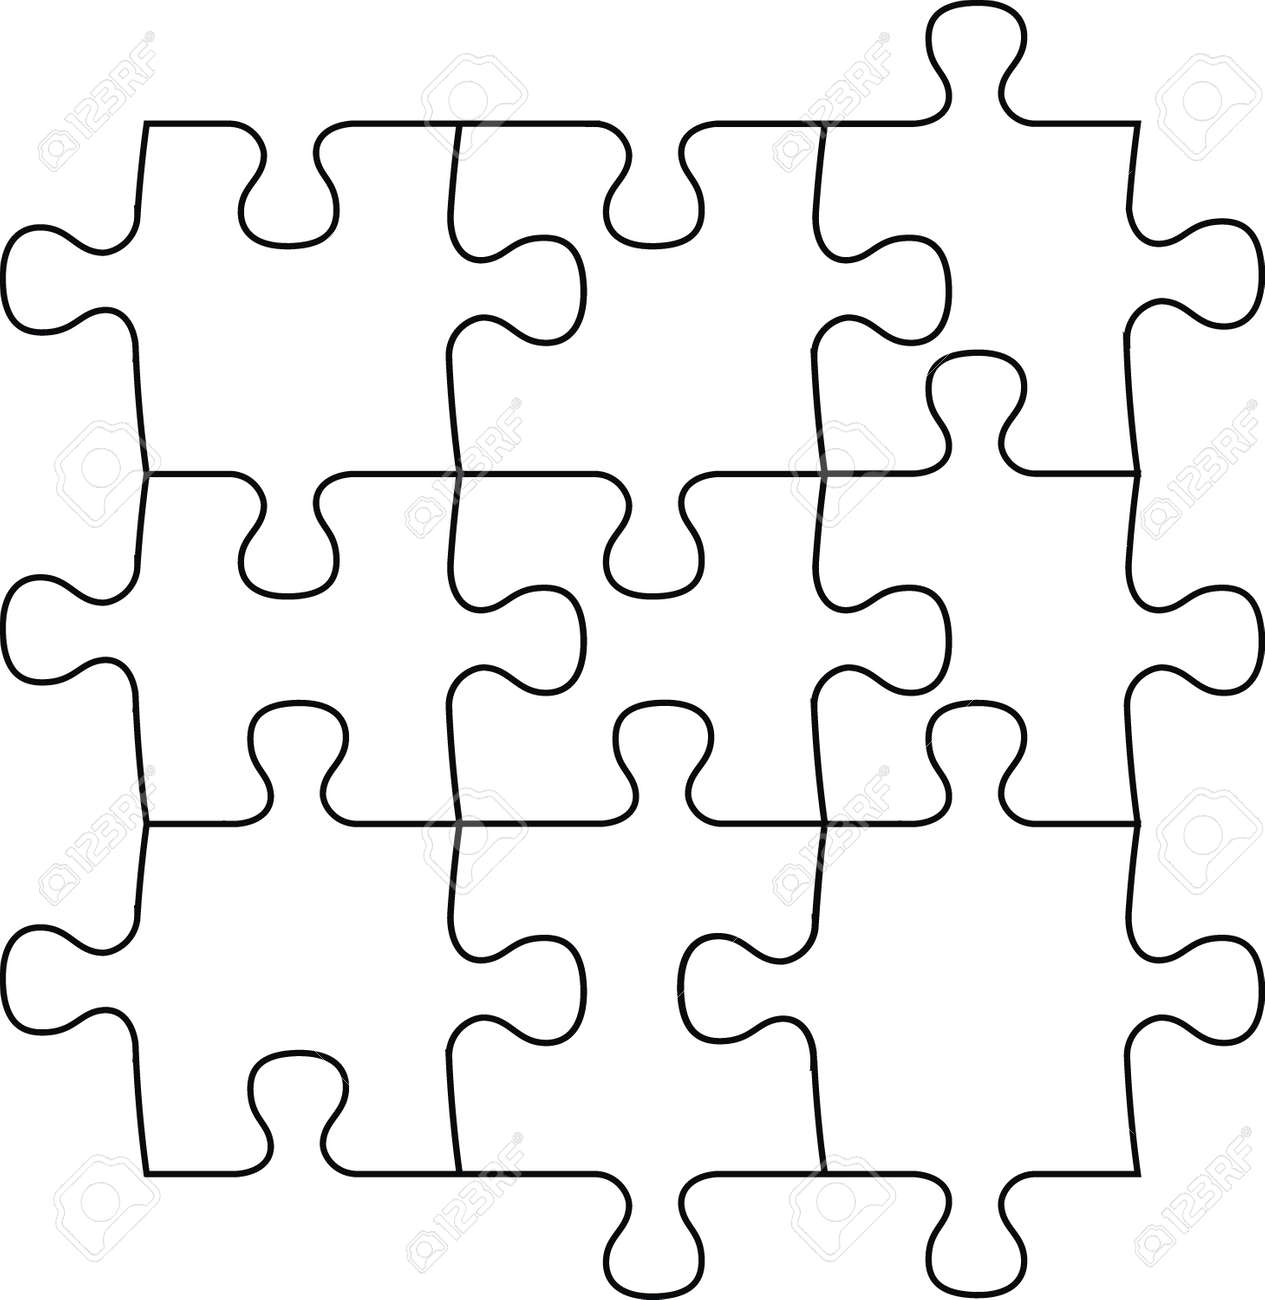 puzzle pieces vector file very easy to edit individual objects rh 123rf com vector puzzle pieces illustrator free vector puzzle piece template